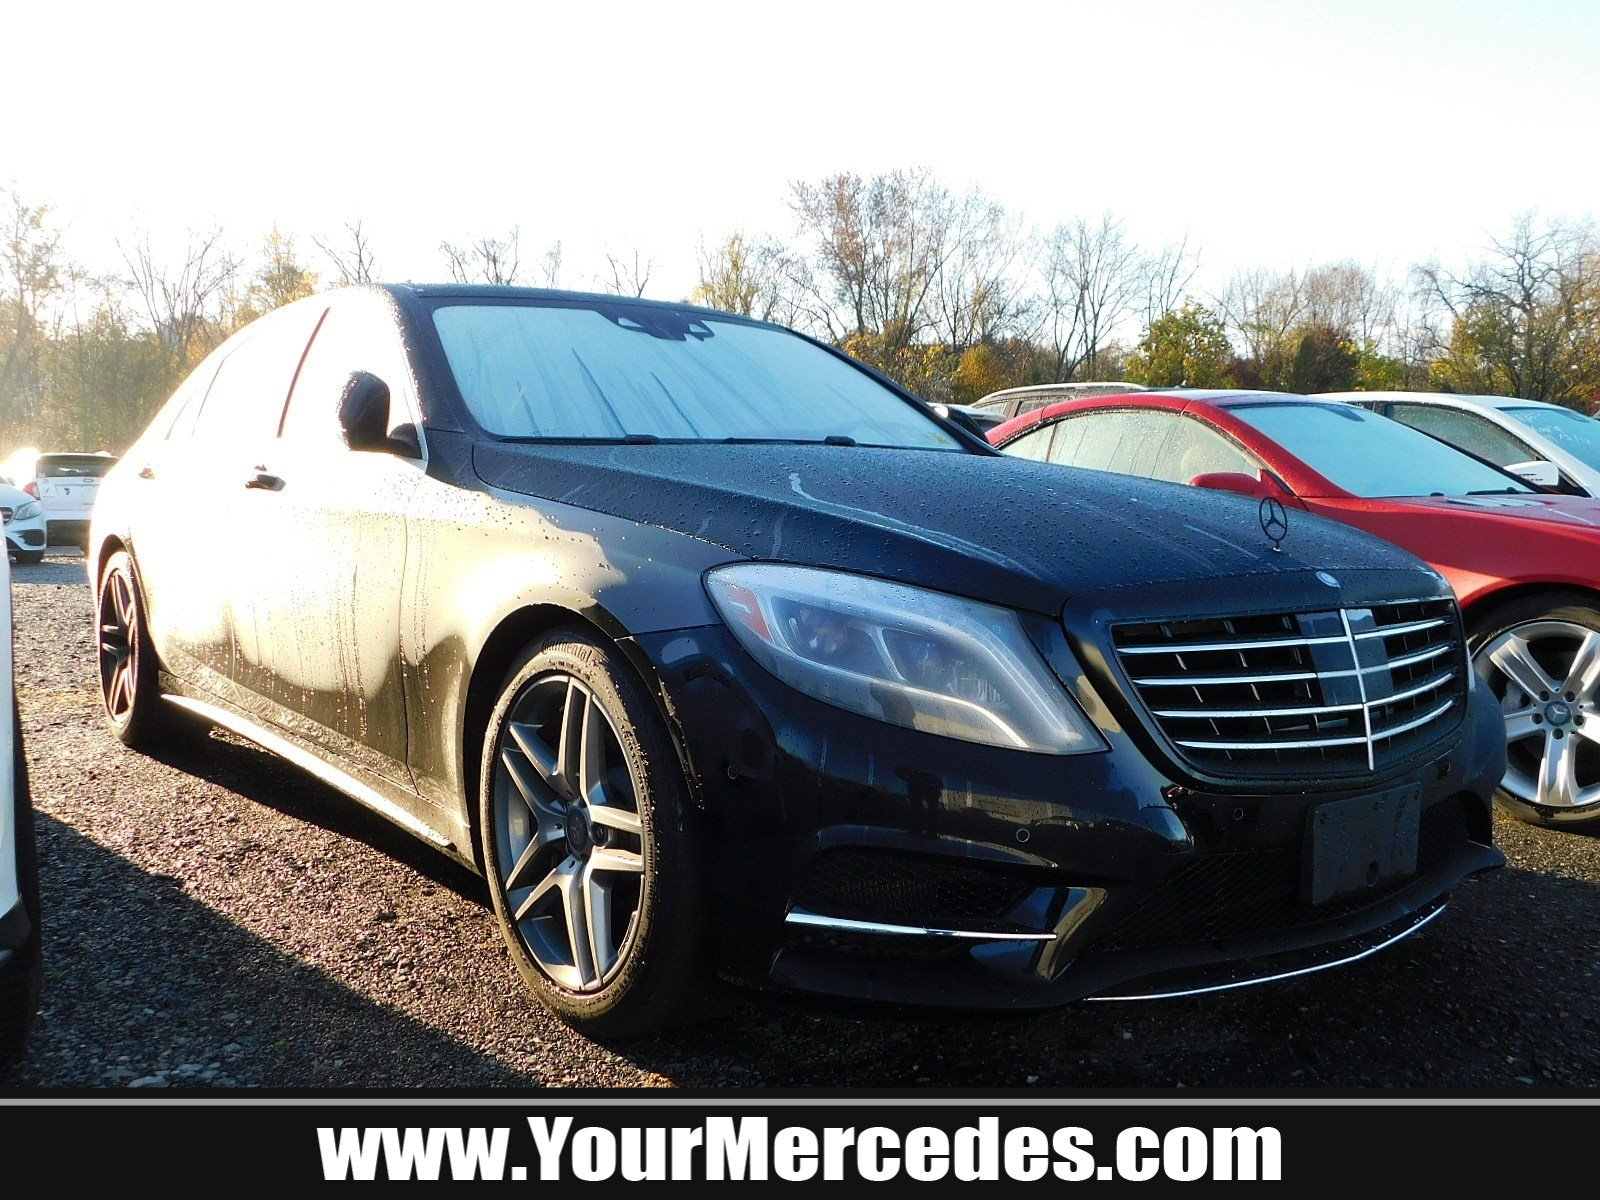 Pre Owned 2015 Mercedes Benz S Class S 550 4dr Car in West Chester